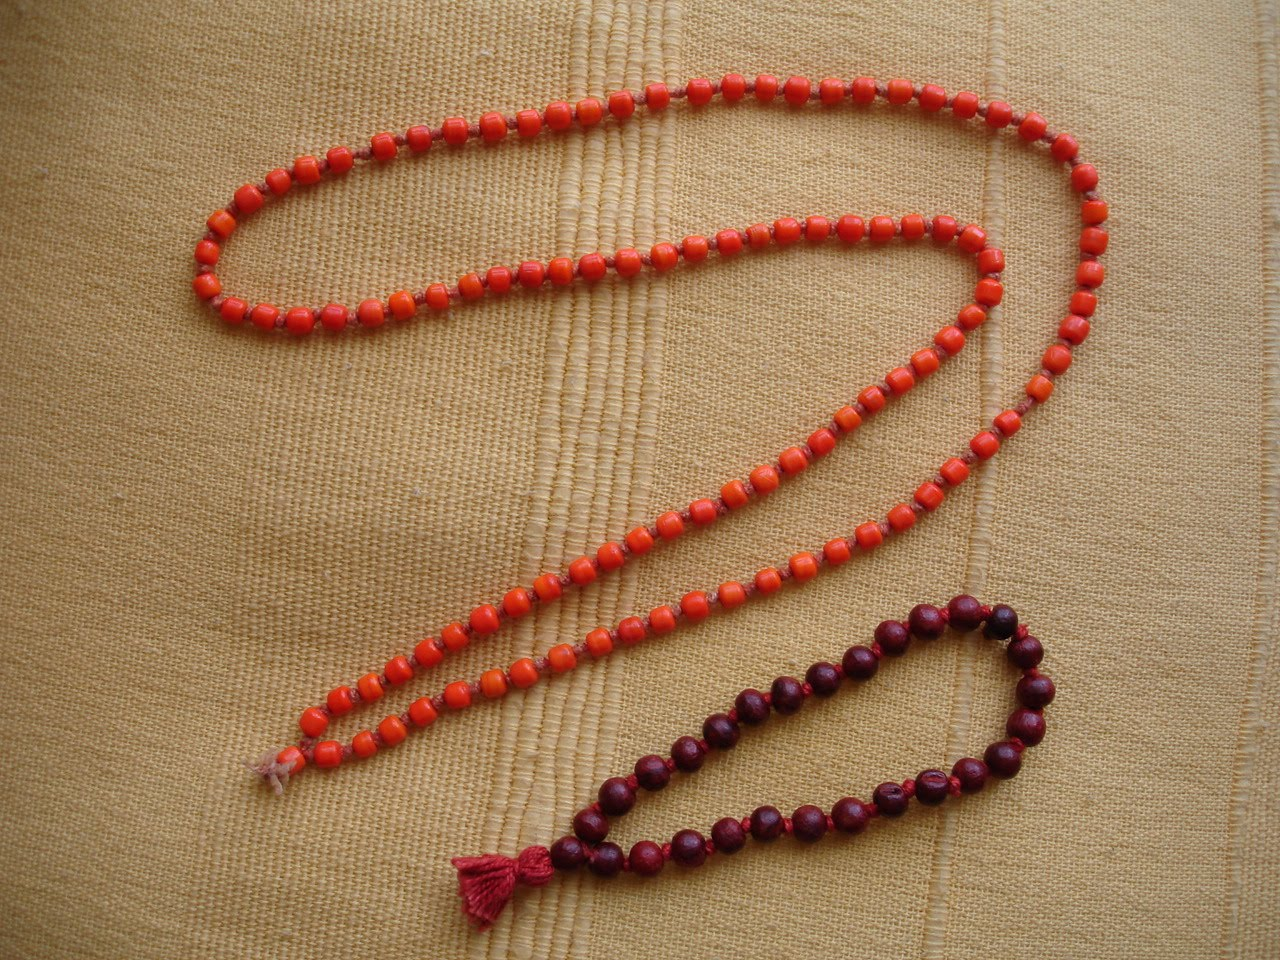 Therapies and the spiritual path: 108 Beads on a Mala